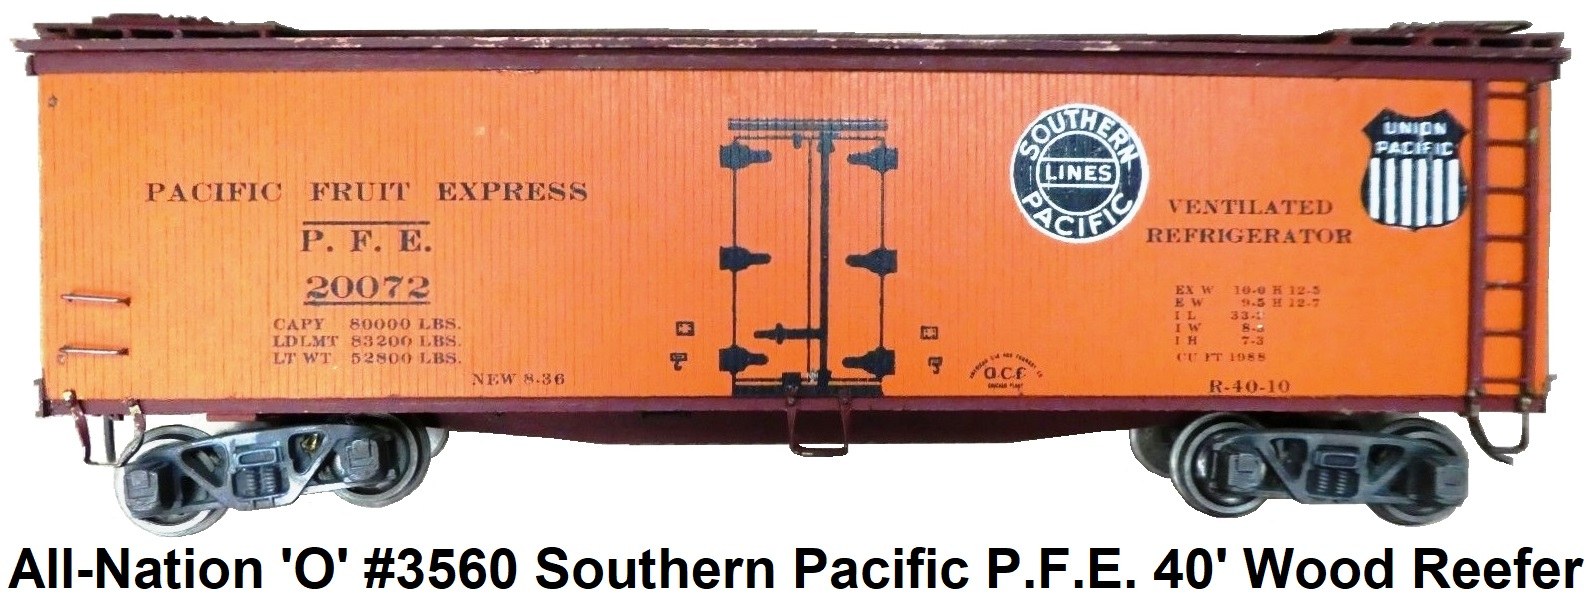 All-Nation 'O' scale 2-rail Kit-built #3560 Southern Pacific PFE 40' Woodside Refrigerator Car Pre-war